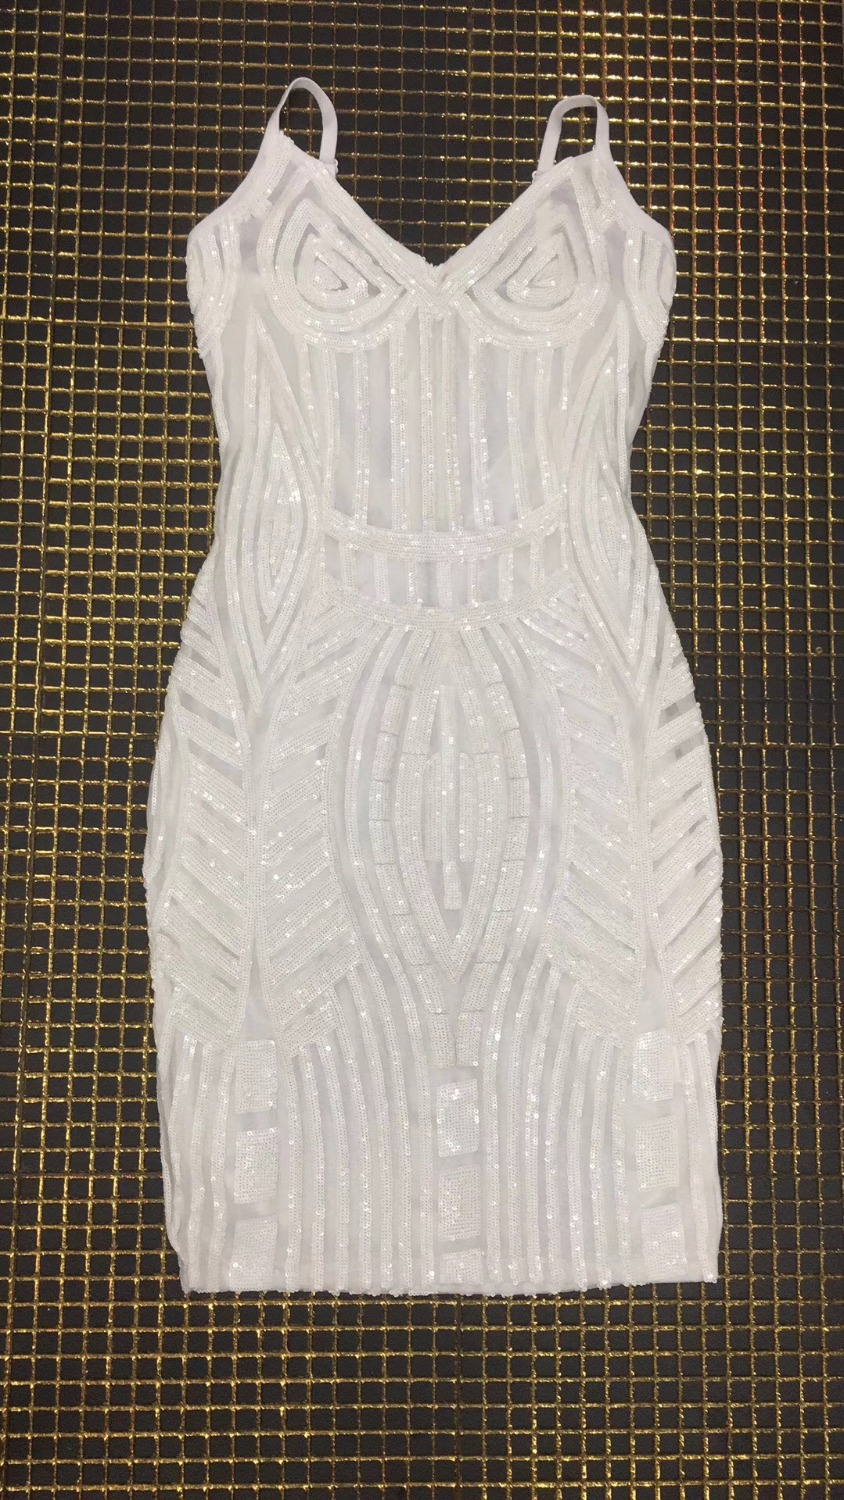 High Quality White Slip Hollow Out Fashion Dress Night Club Party Dress